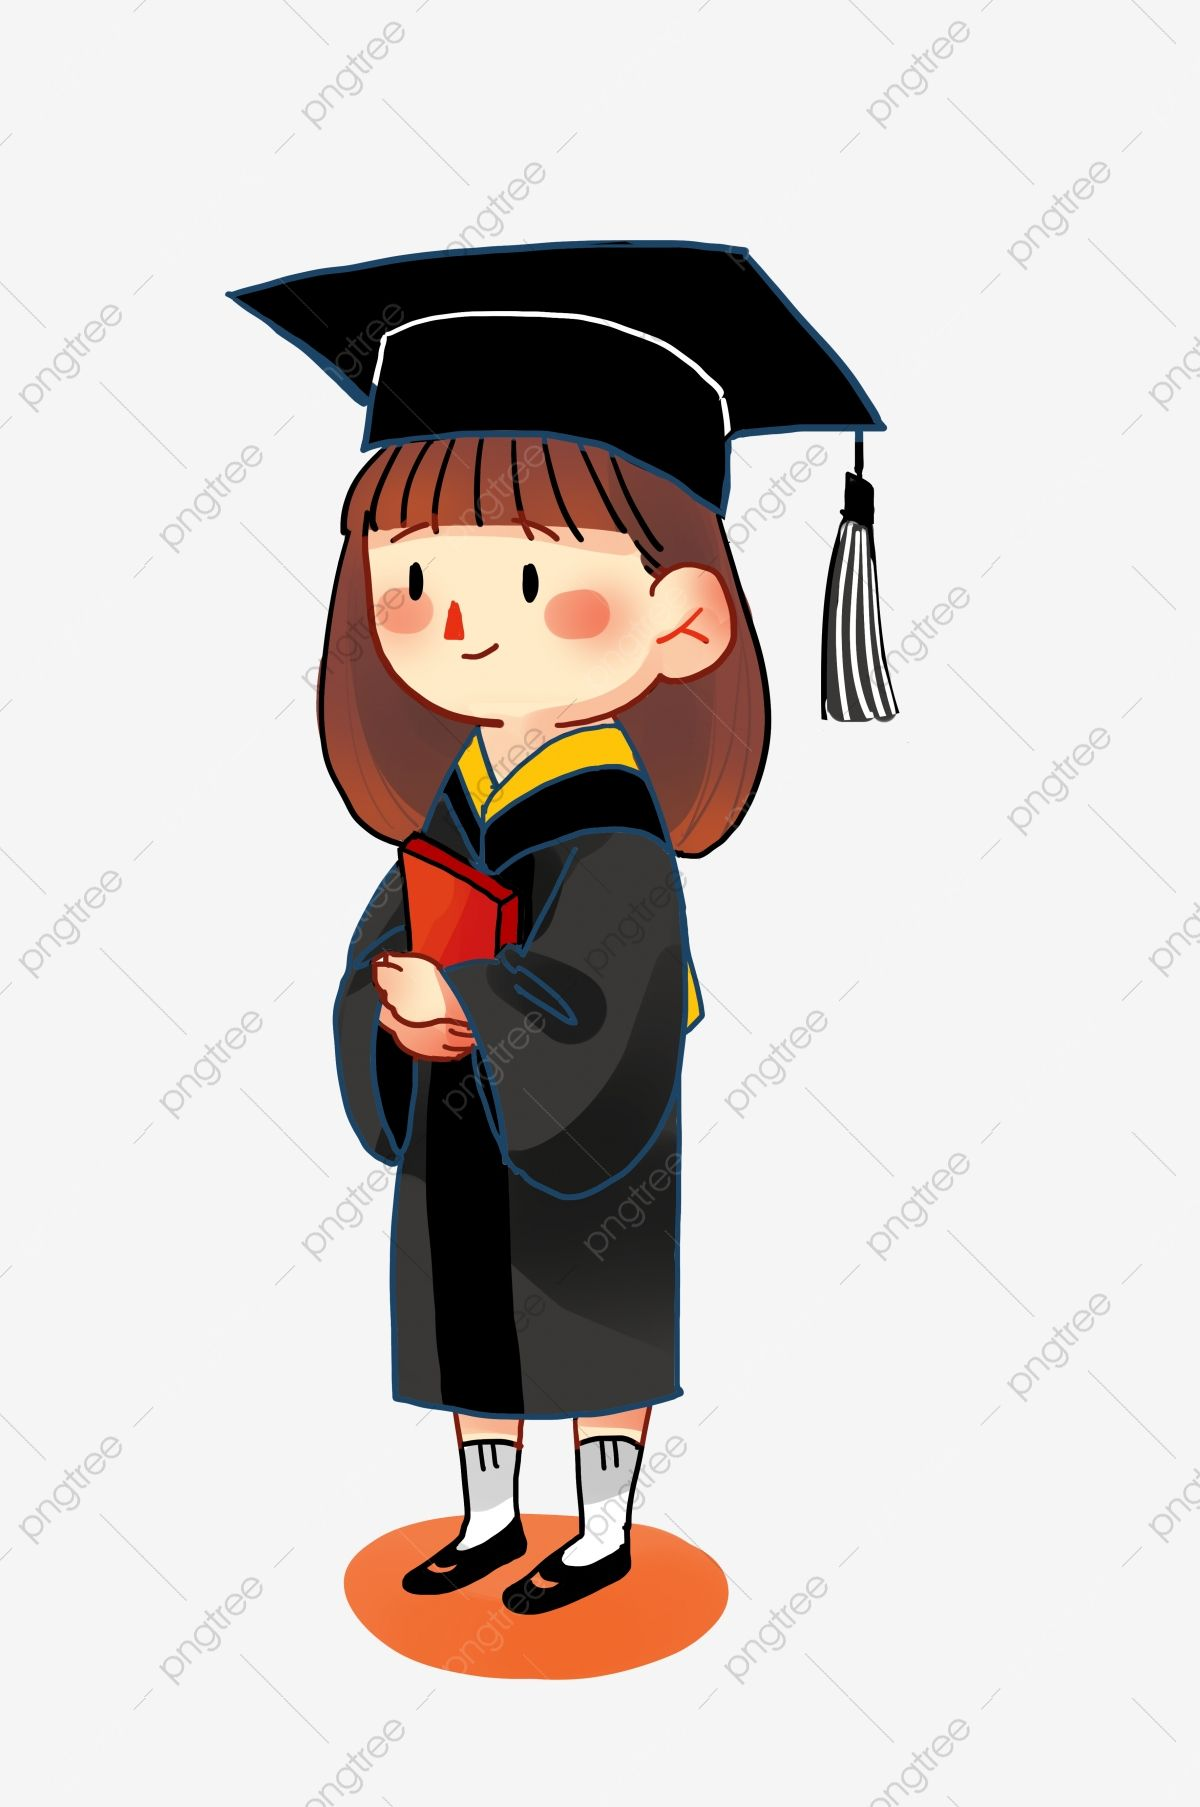 Teenage College Graduation Season College Student Graduation Season Professional Png Transparent Clipart Image And Psd File For Free Download Graduation Cartoon Graduation Poster Graduation Clip Art